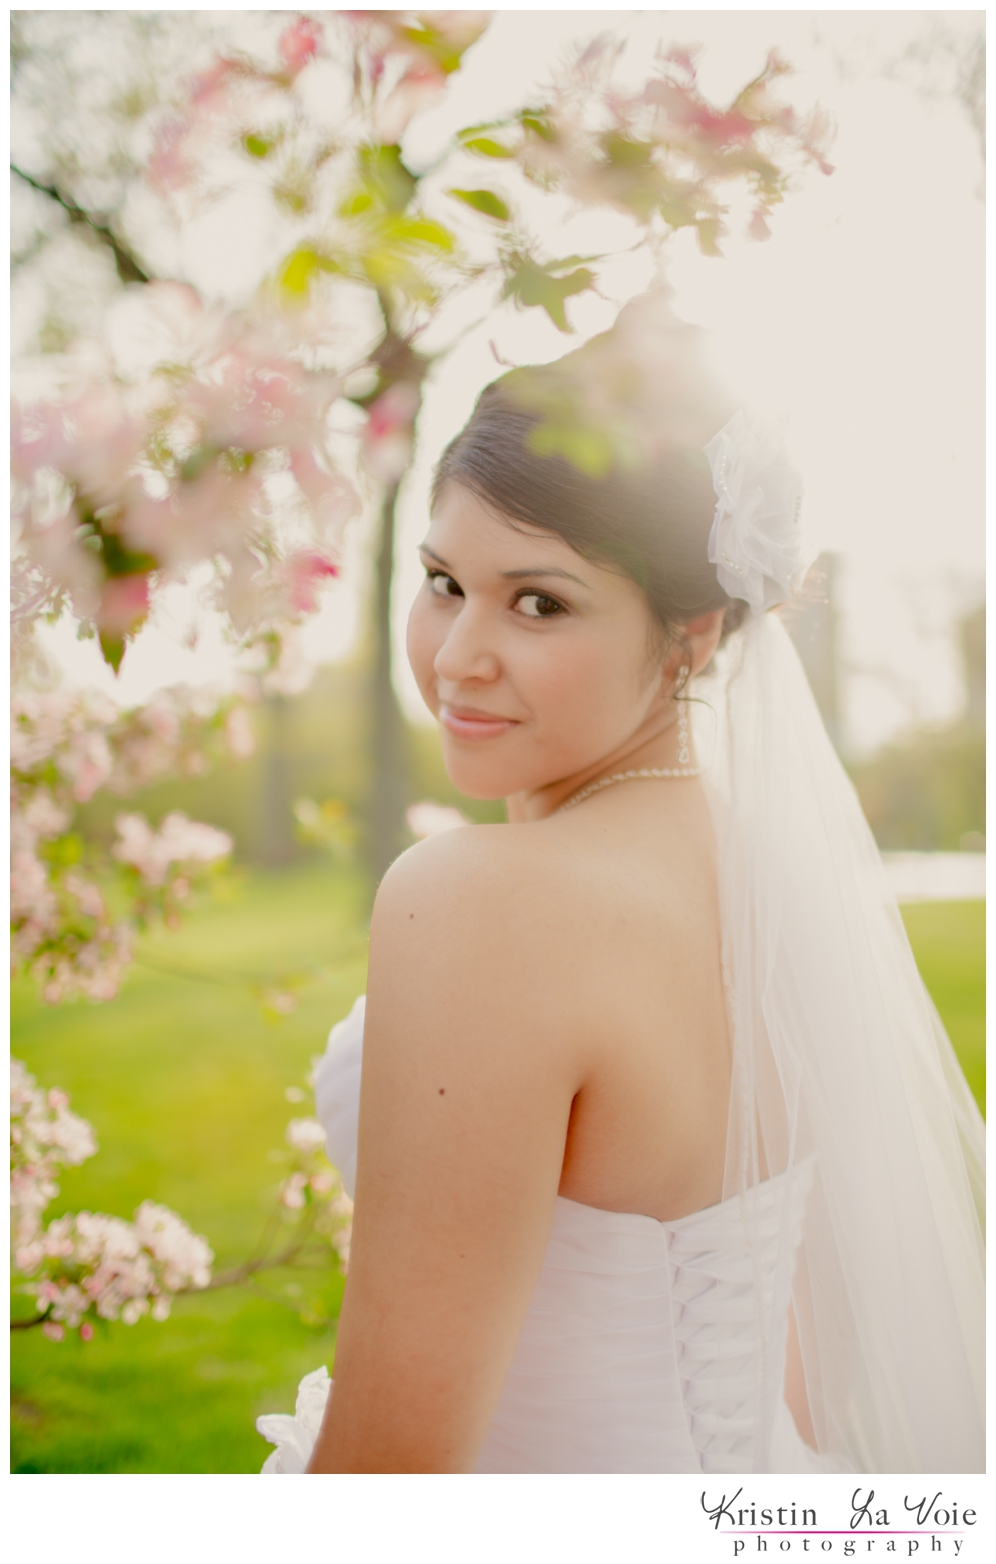 Kristin-La-Voie-Photography-Mint-Yellow-Styled-Shoot-Lincoln-Park-Wedding-Photographer-31.jpg